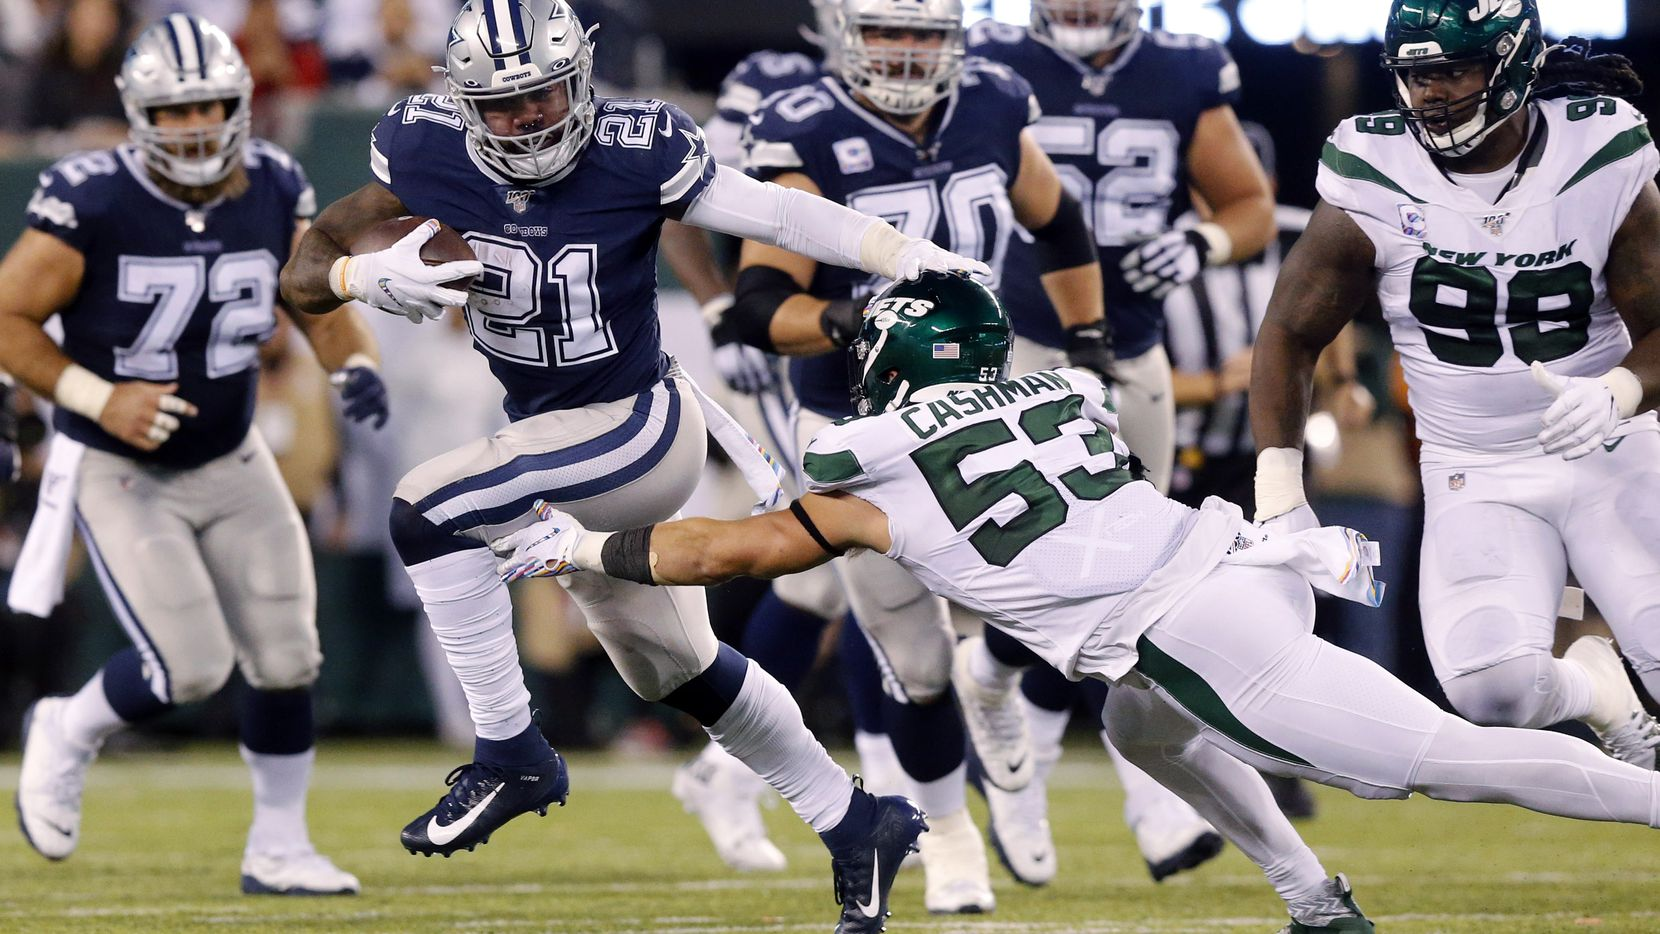 Dallas Cowboys running back Ezekiel Elliott (21) avoids the diving tackle attempt by New York Jets linebacker Blake Cashman (53) at MetLife Stadium in East Rutherford, New Jersey, Sunday, October 13, 2019.